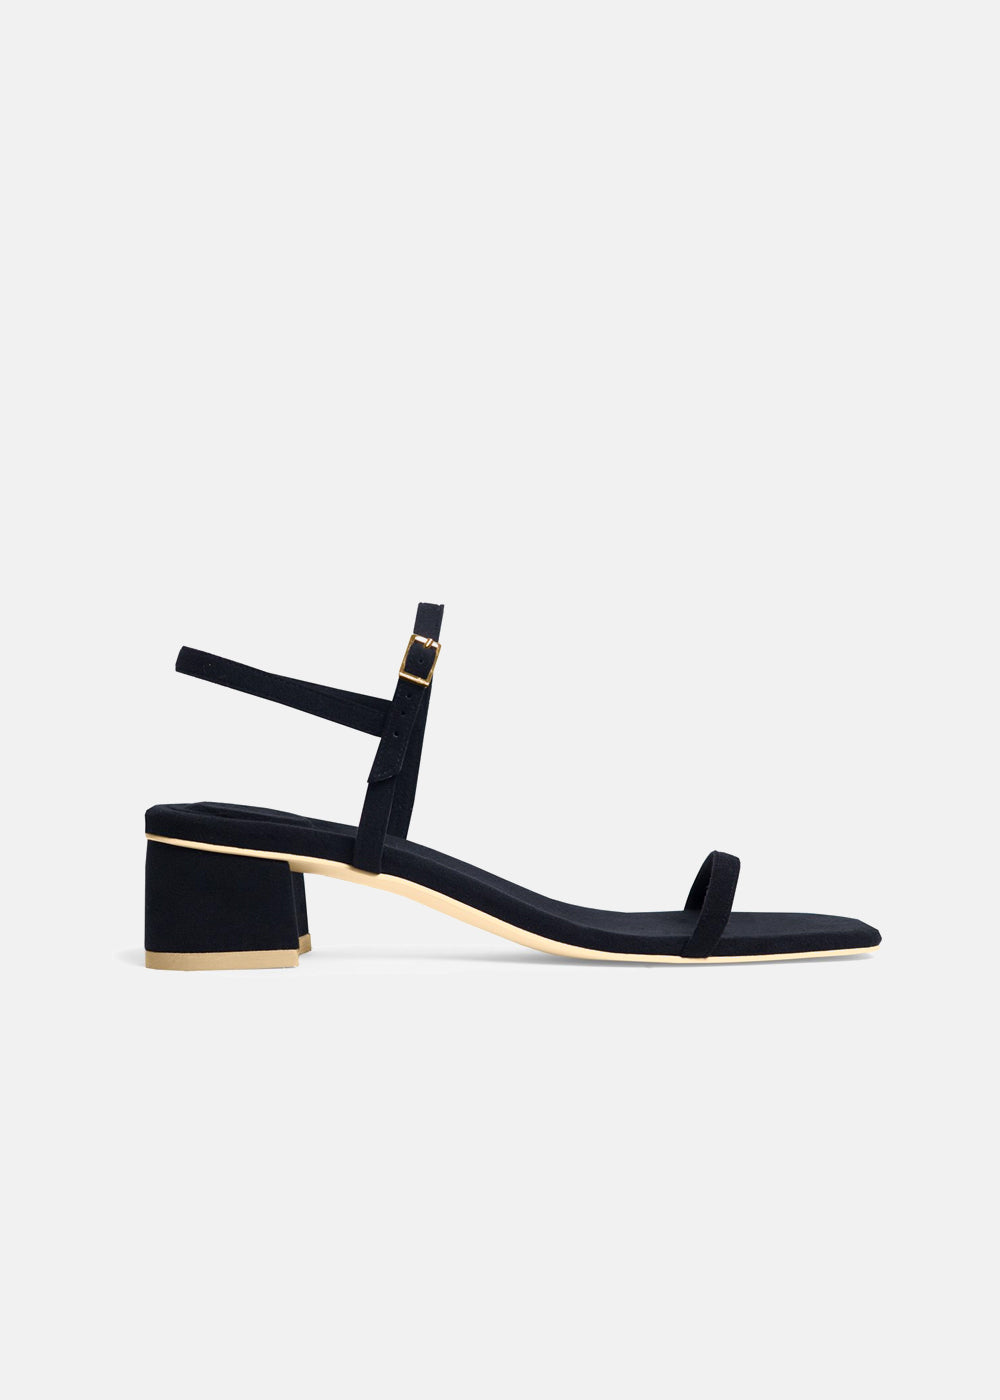 RAFA Milli Sandal in Sloe — Shop sustainable fashion and slow fashion at New Classics Studios